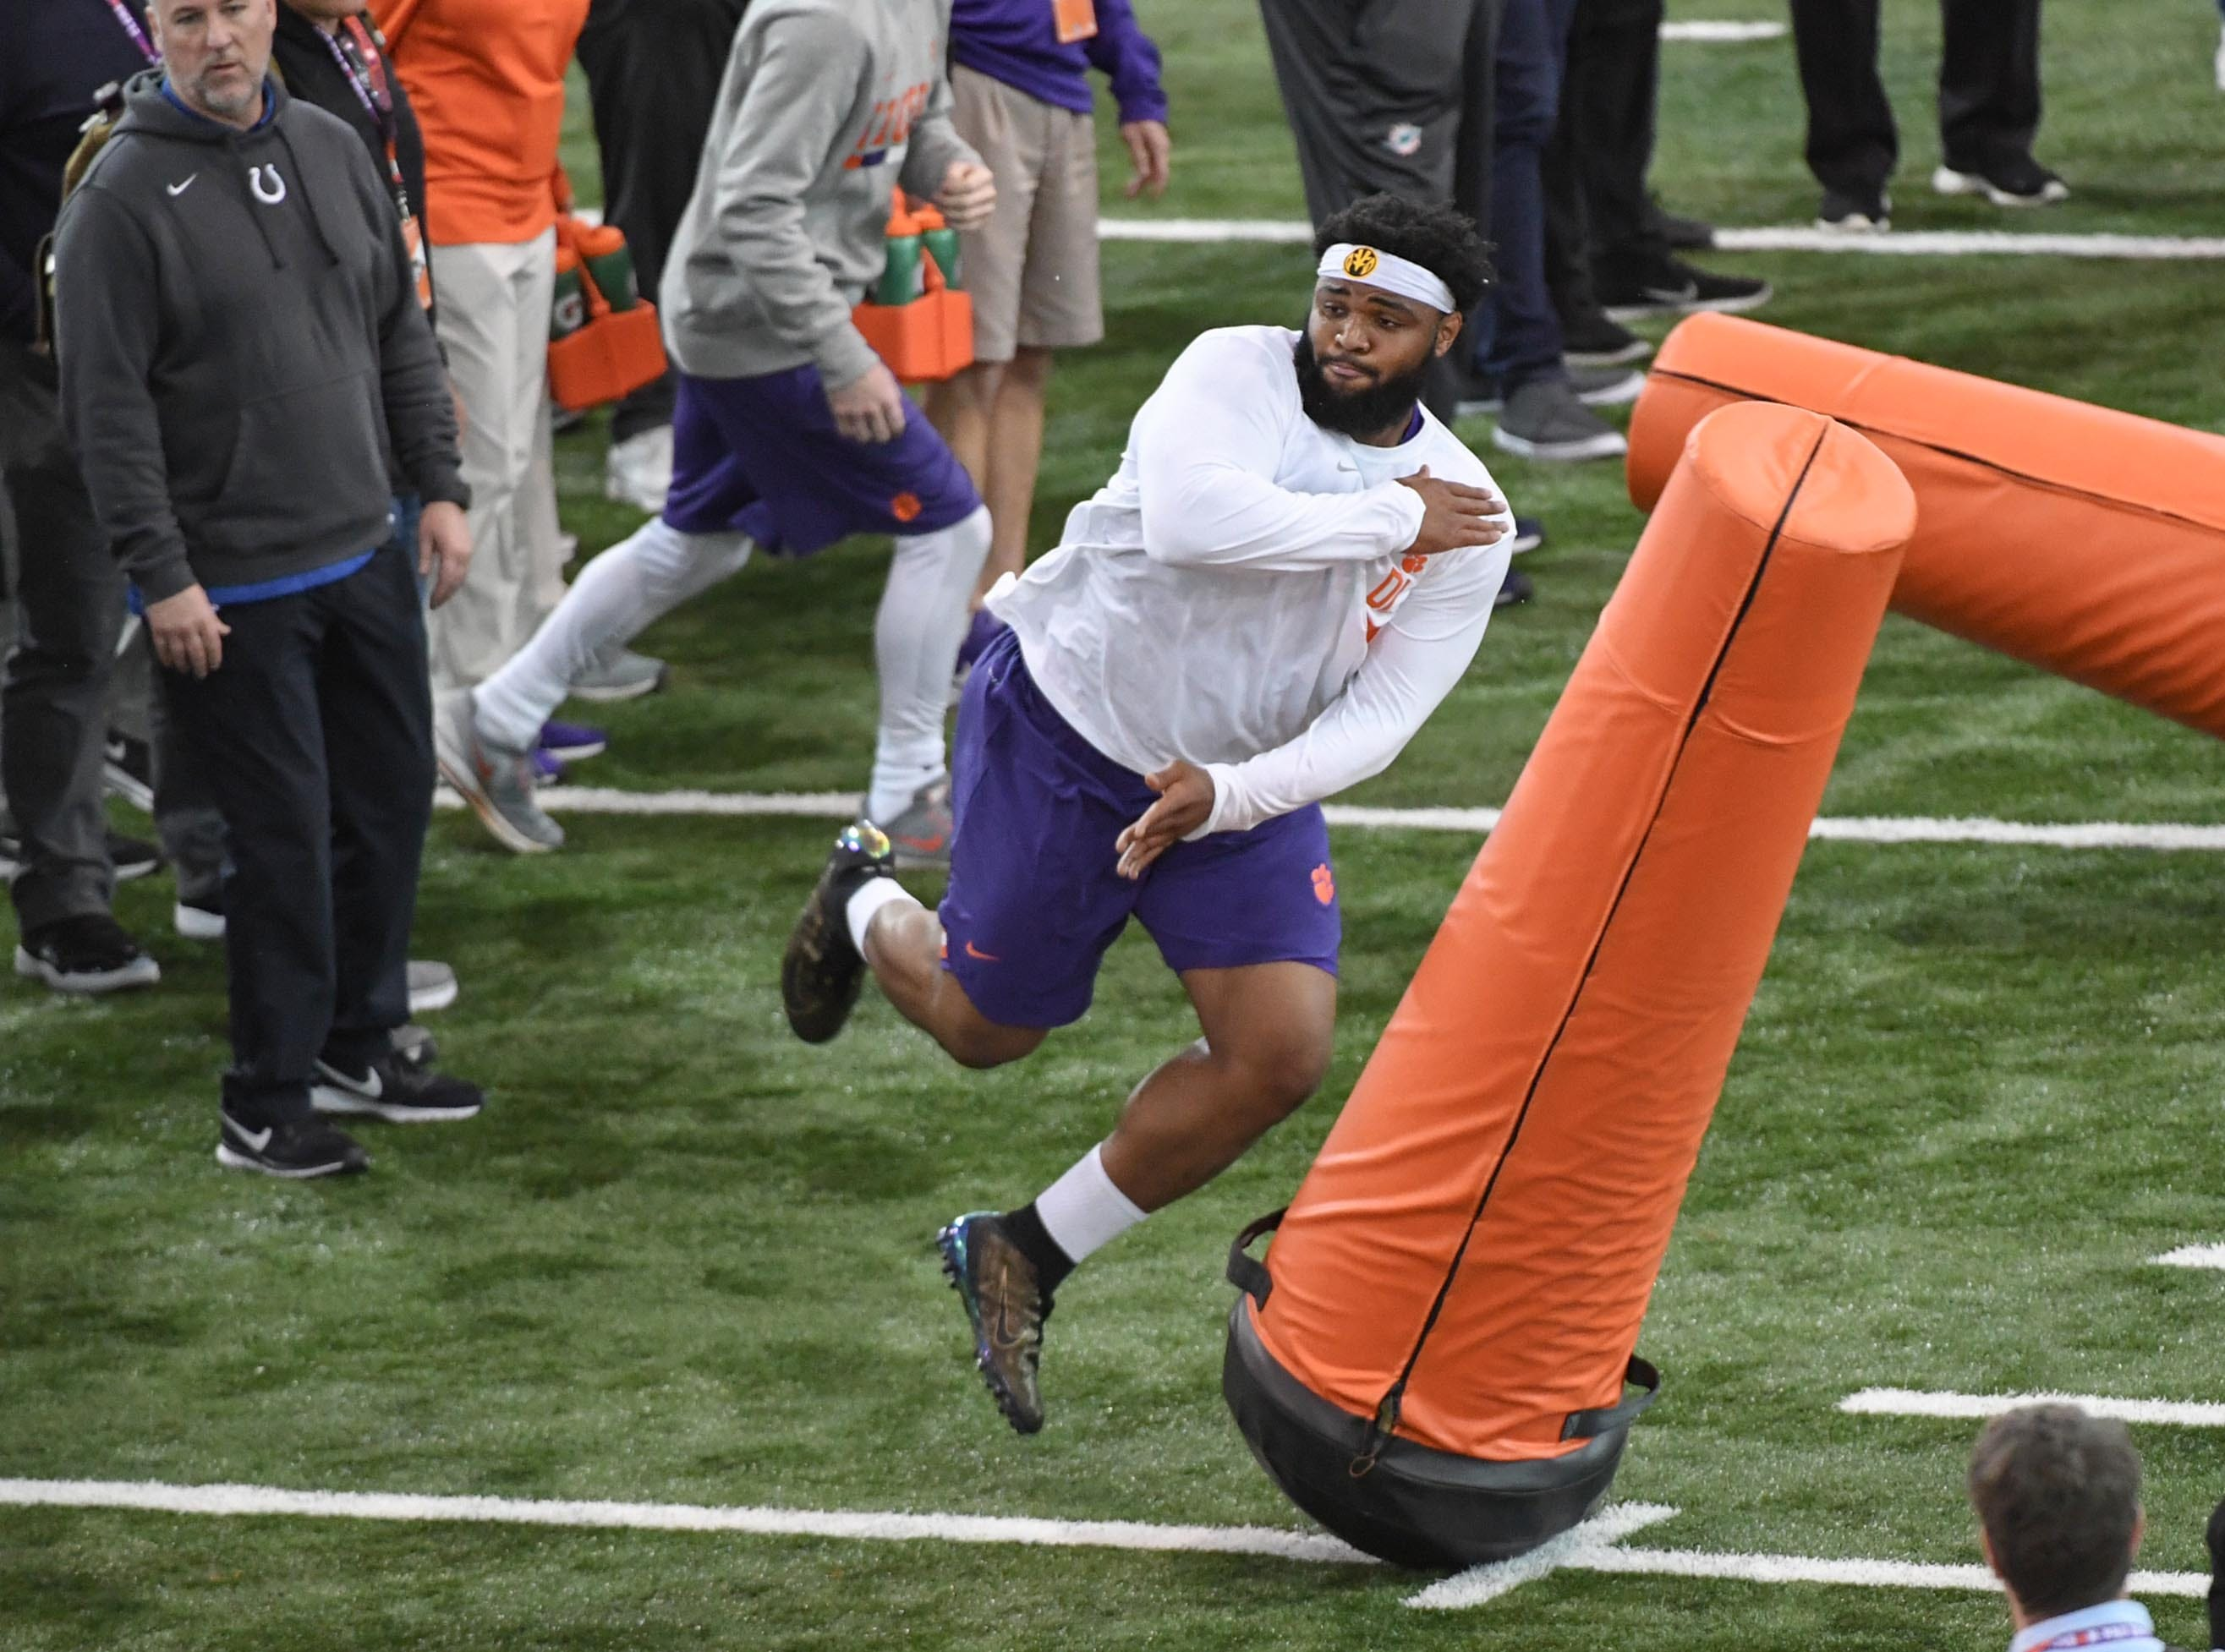 Defensive lineman Christian Wilkins in a drill during Clemson pro day at the Poe Indoor Facility in Clemson Thursday, March 14, 2019.